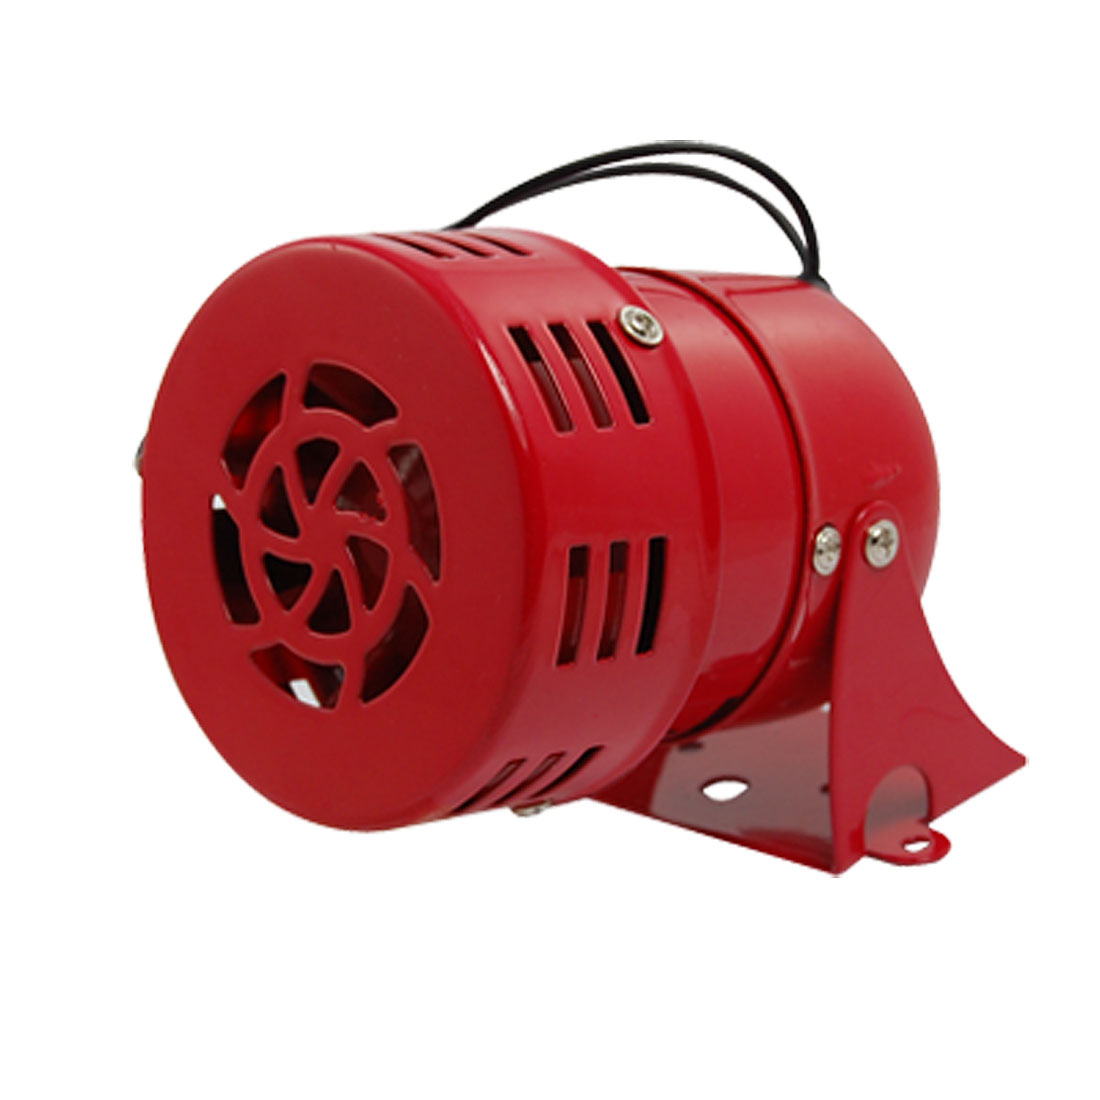 MS-190 AC 220V 0.43A Red Metal Sheel 114dB Mini Motor Siren Horn